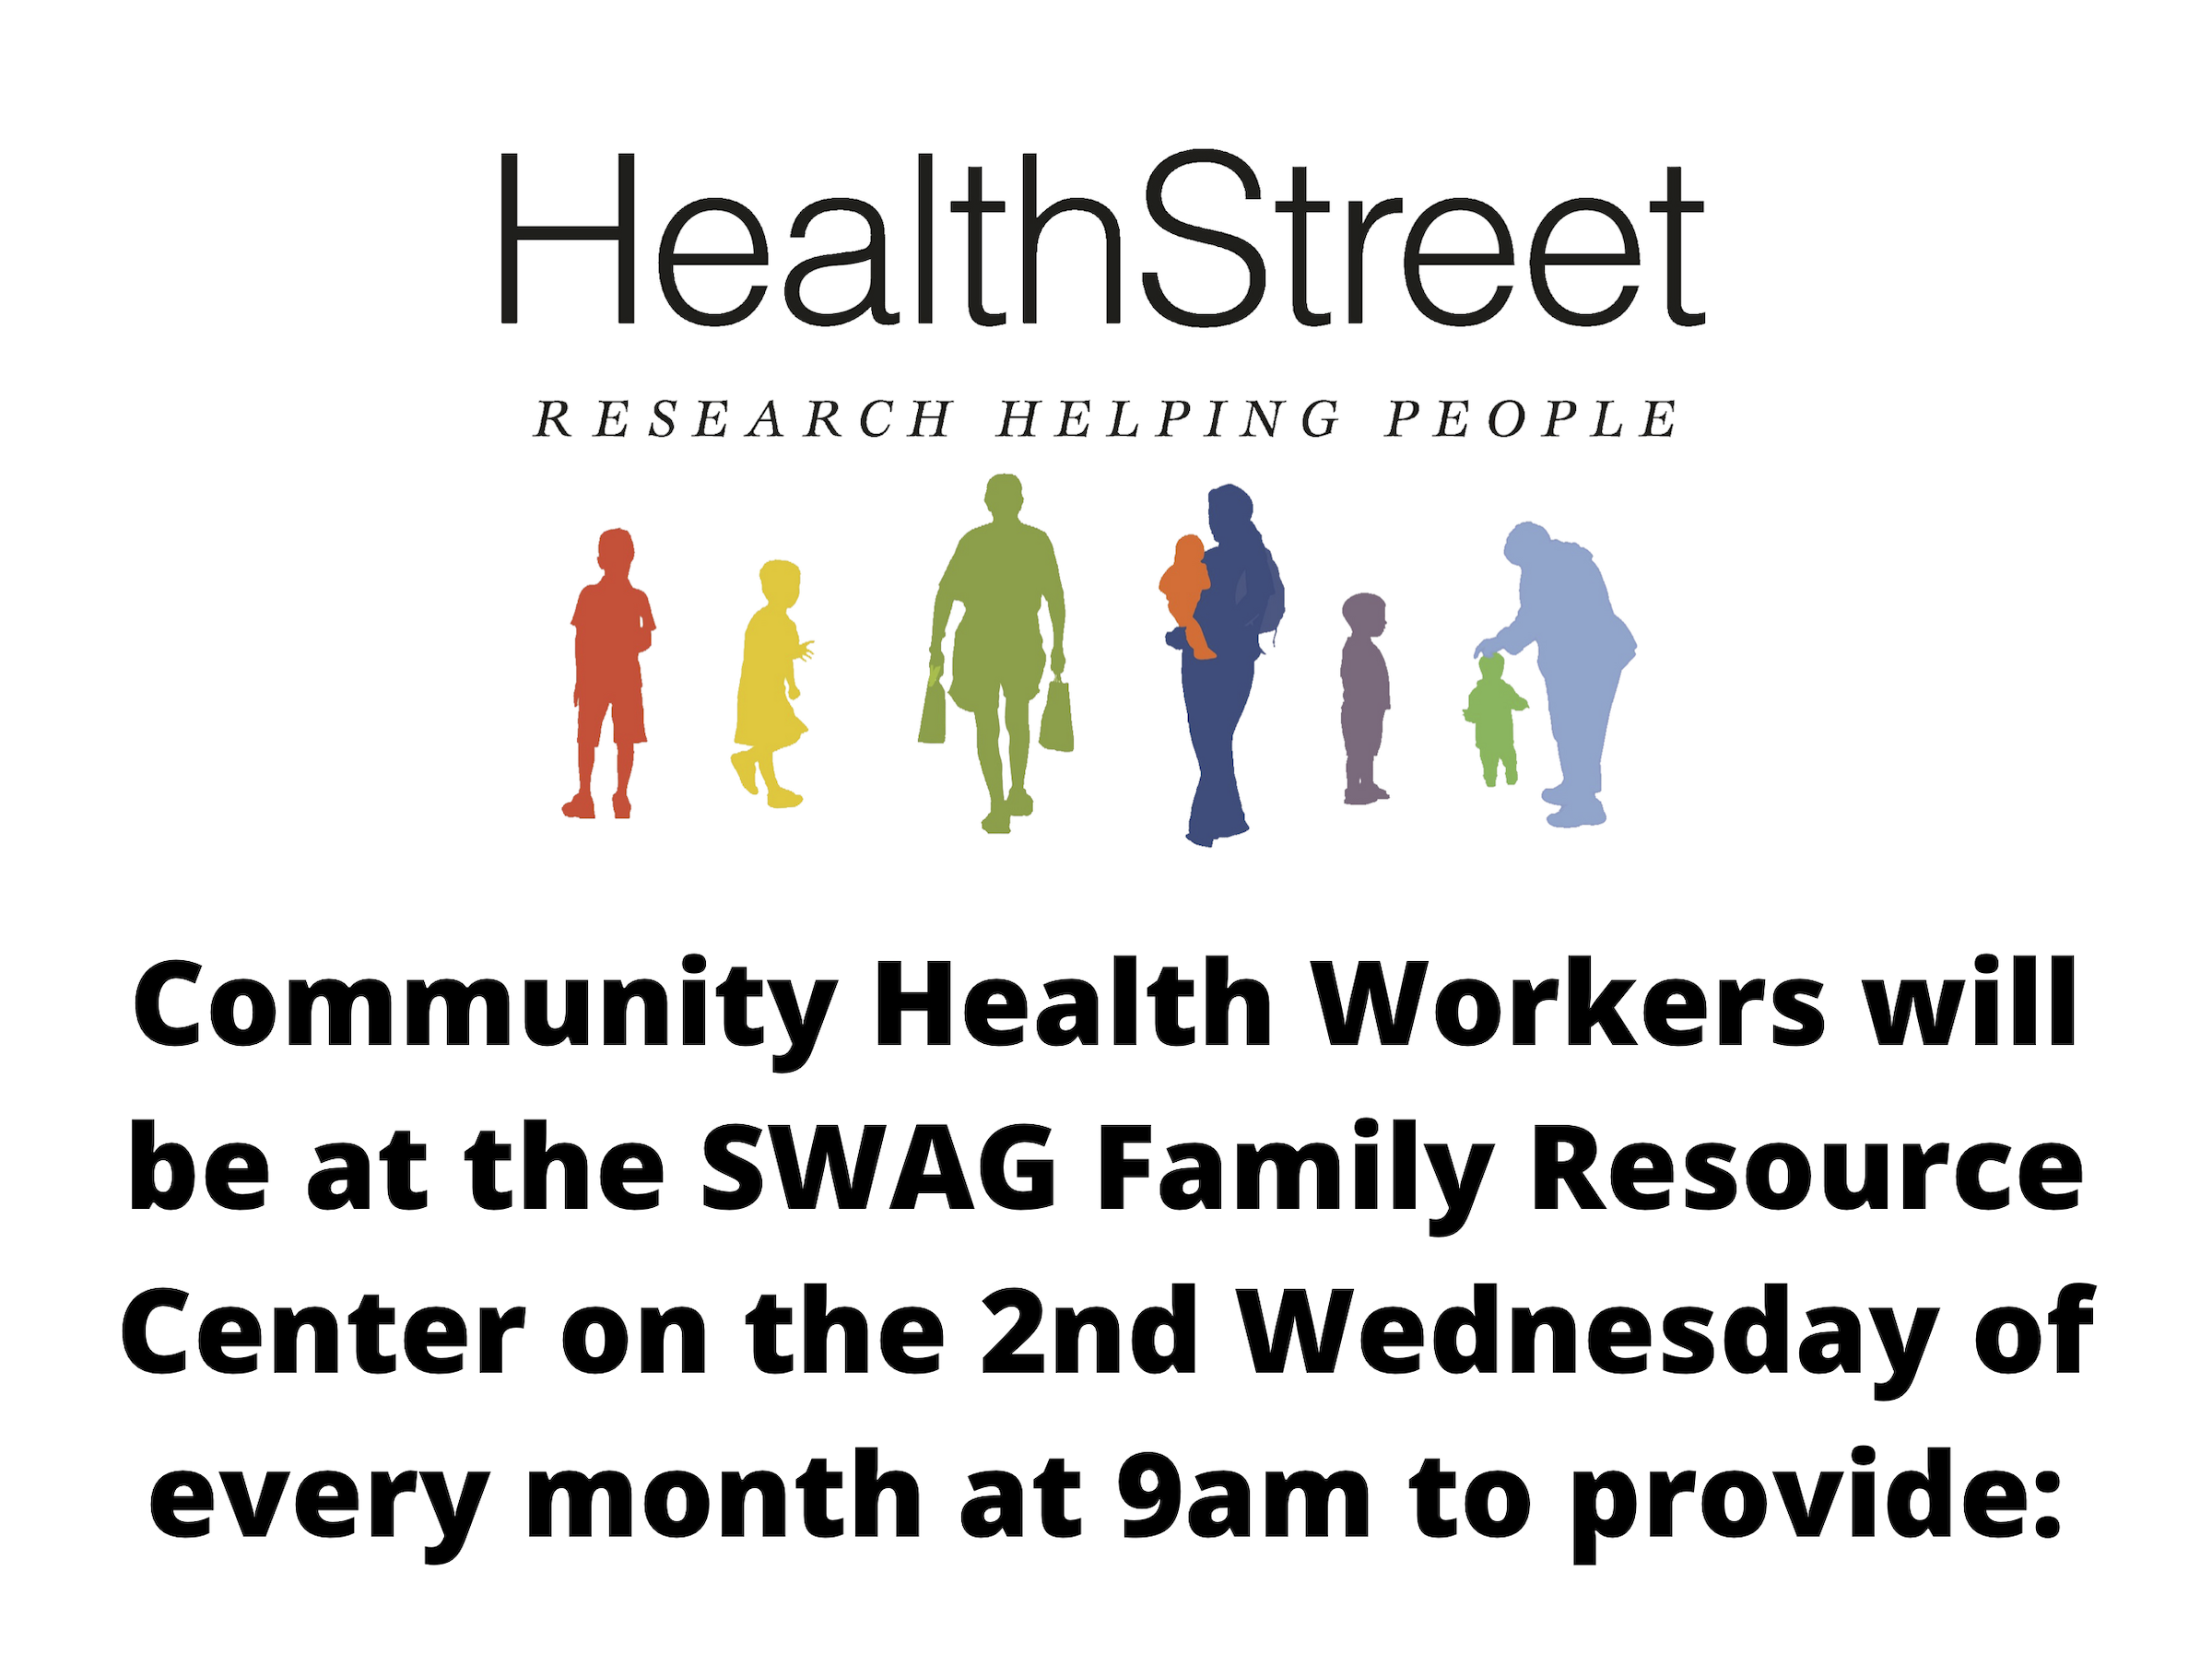 The flyer for HealthStreet at the SWAG Family Resource Center on the 2nd Wednesday of each month at 9am